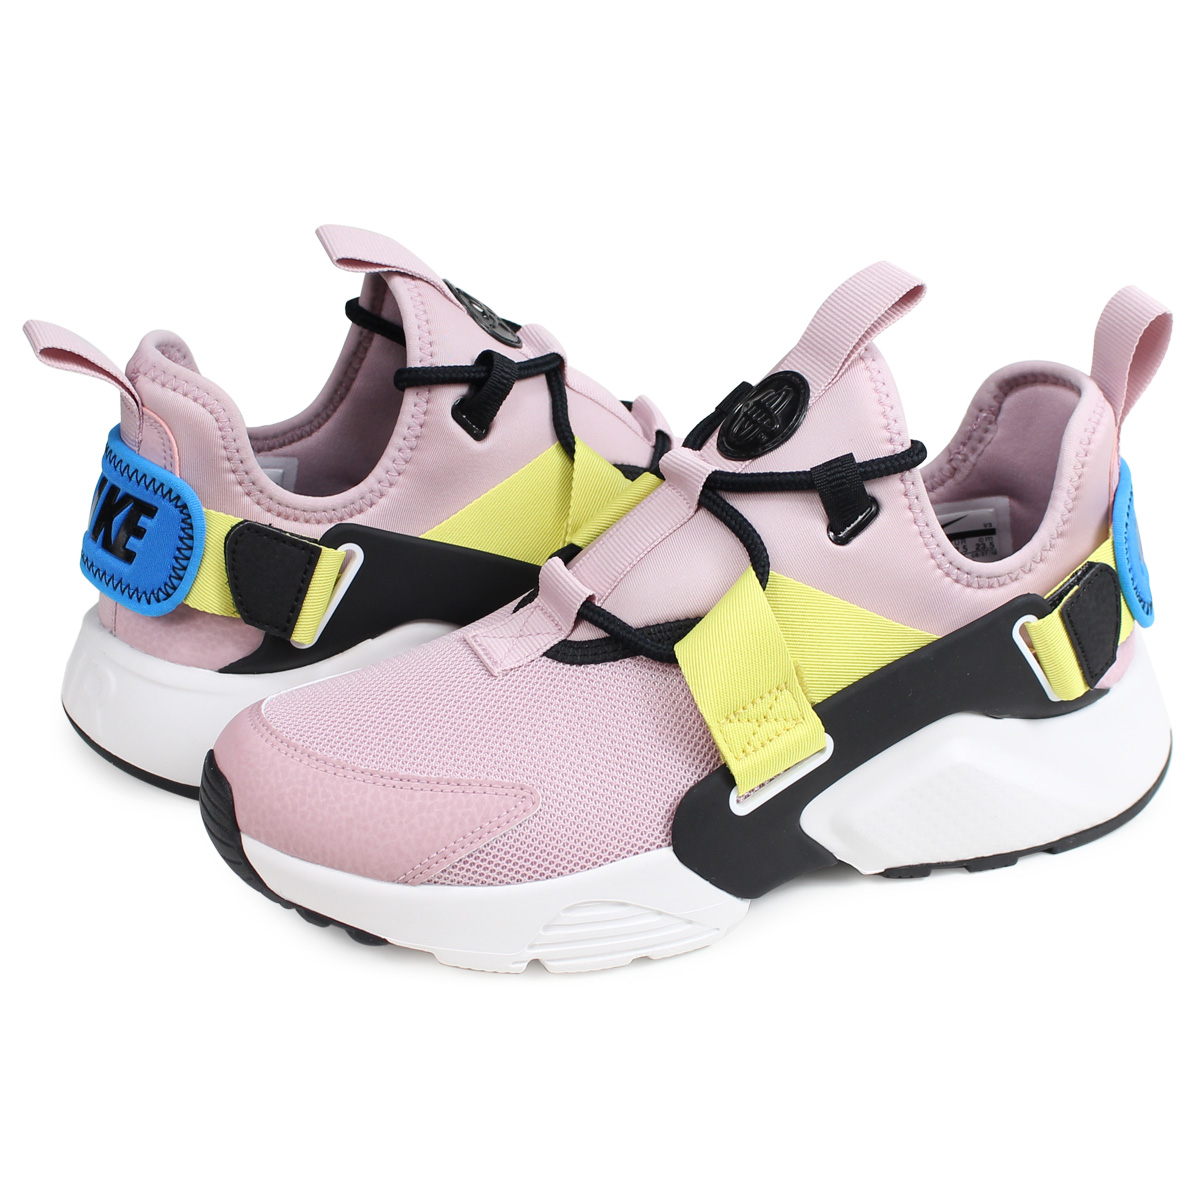 release date 02956 c0037 Nike NIKE エアハラチシティスニーカーレディースメンズ WMNS AIR HUARACHE CITY LOW pink AH6804-500